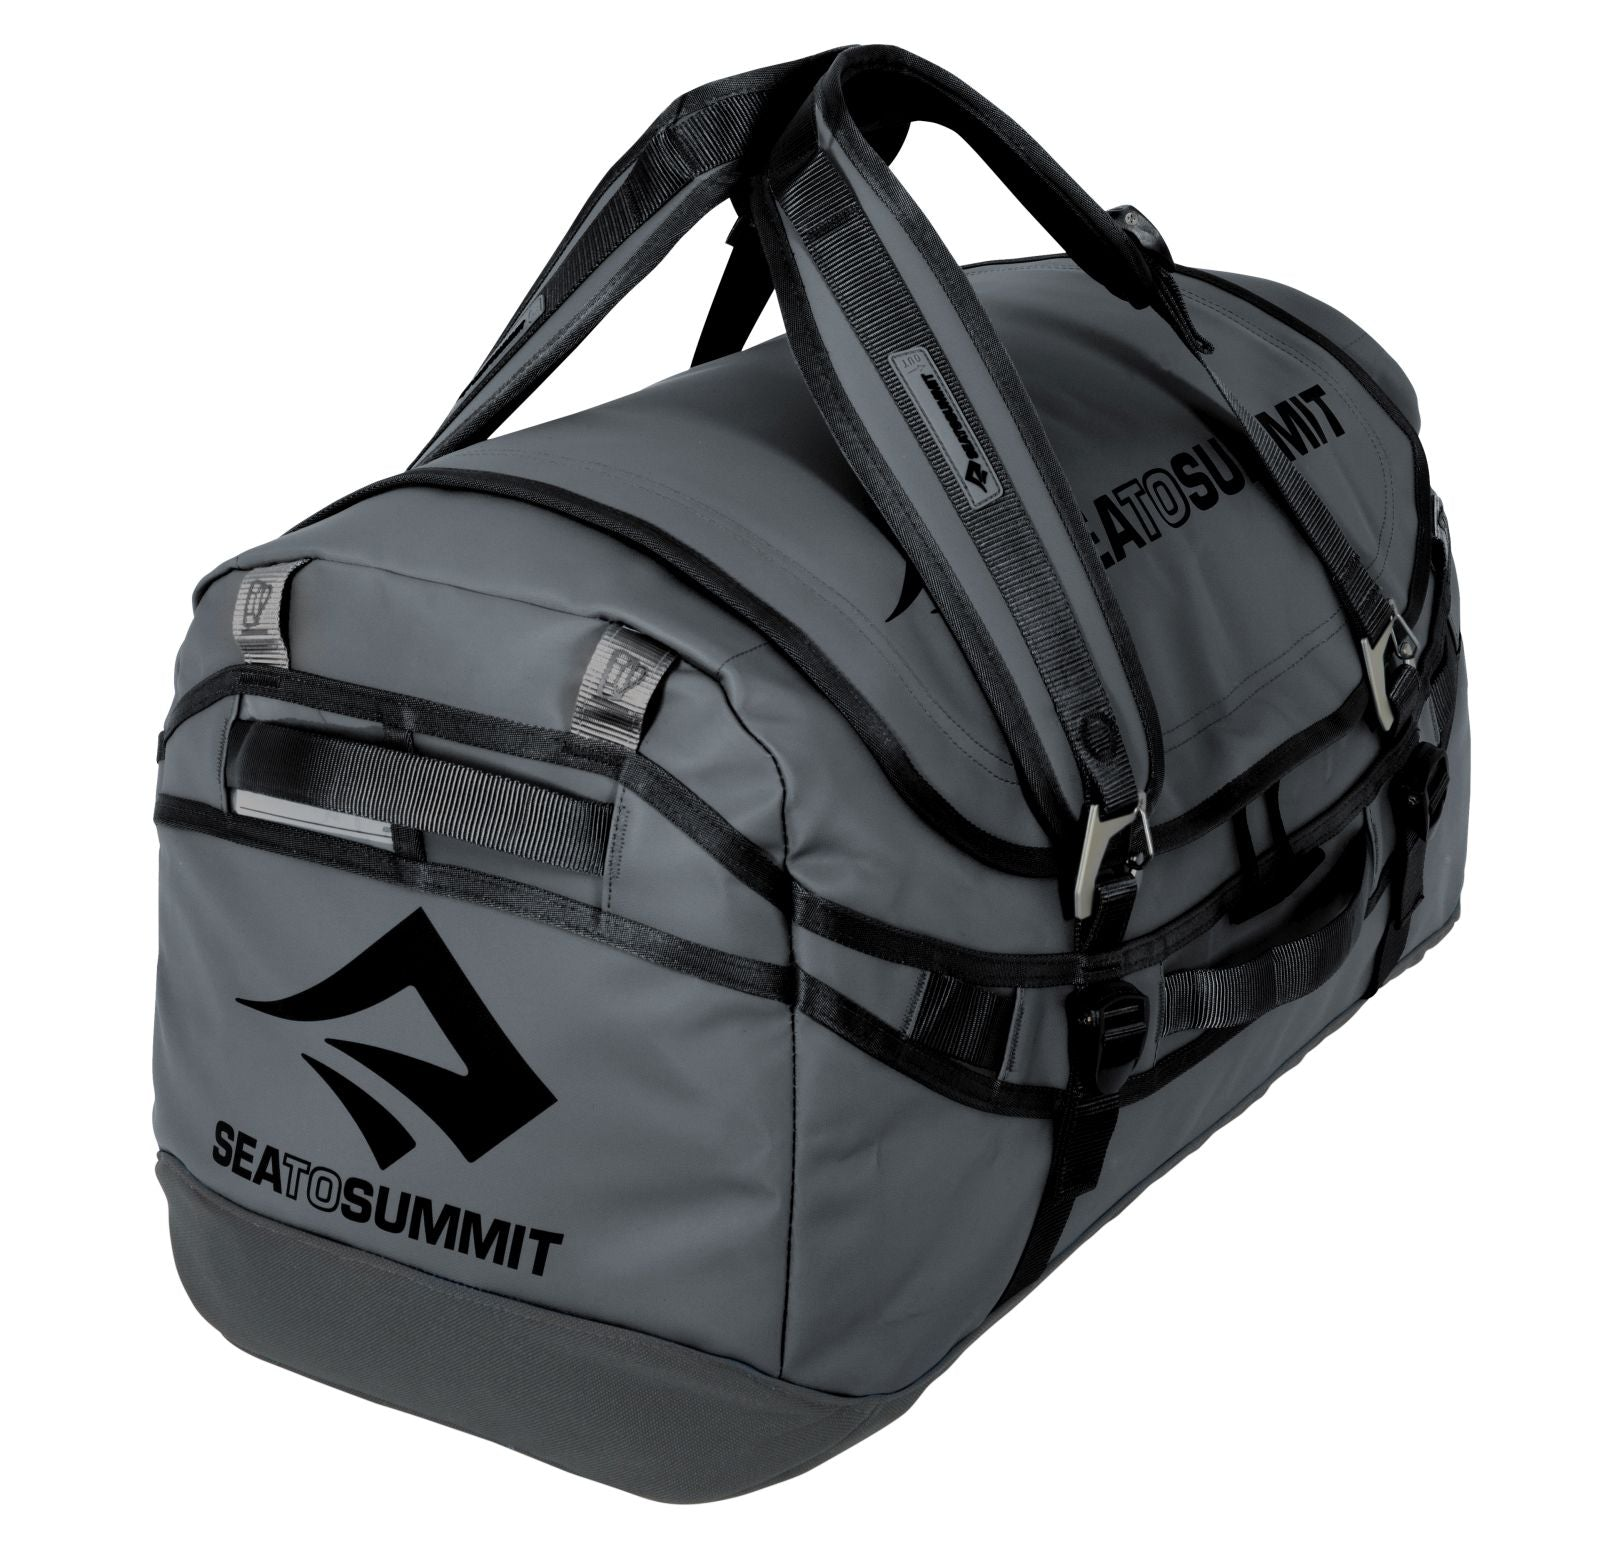 a0b55a4a5ba4 https   www.gearcoop.com products wild-country-mission-climbing ...